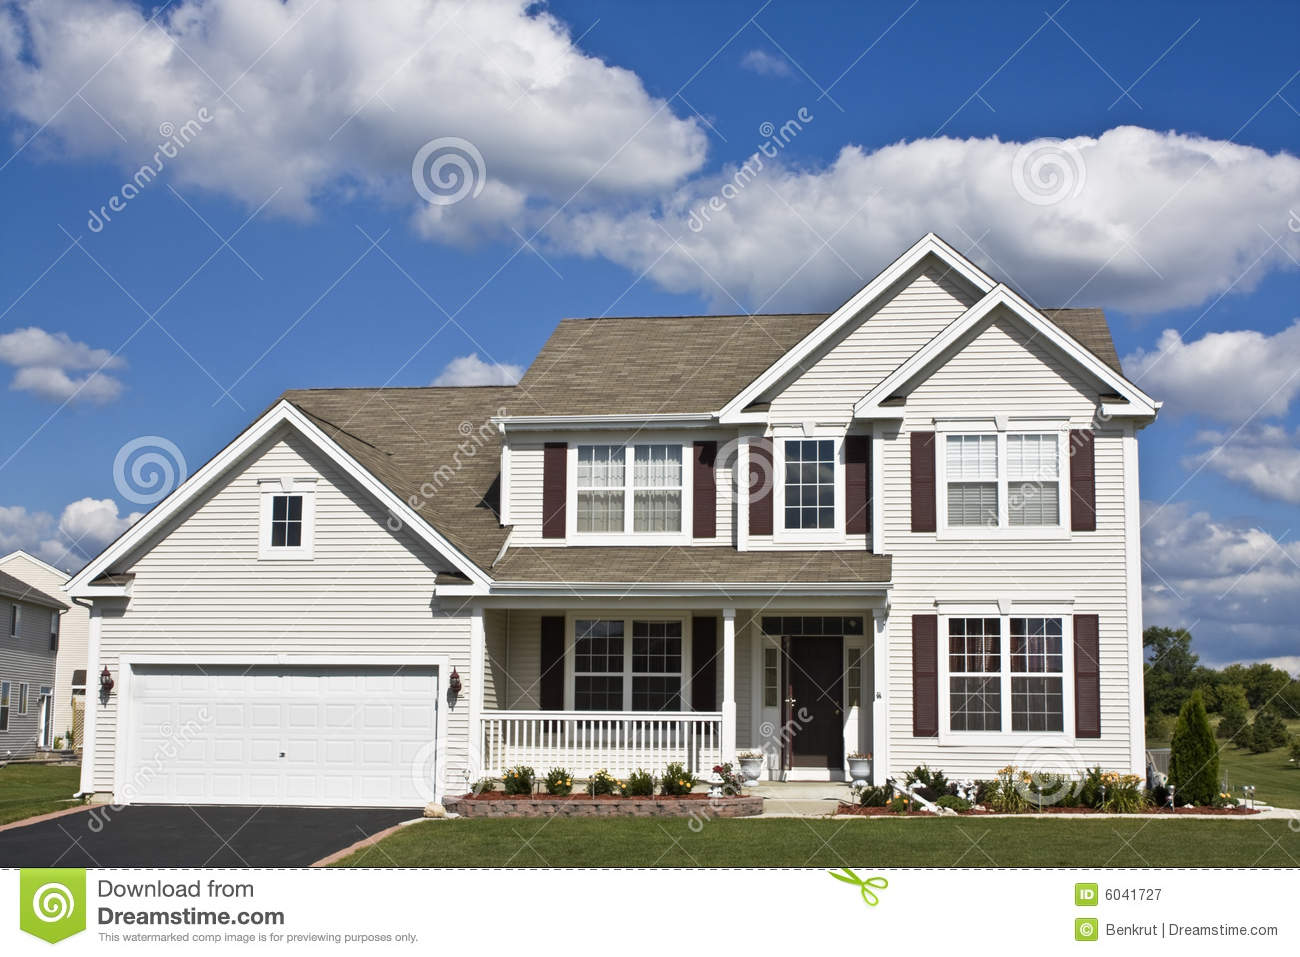 Suburban house stock image image of back front exterior for Free house photos